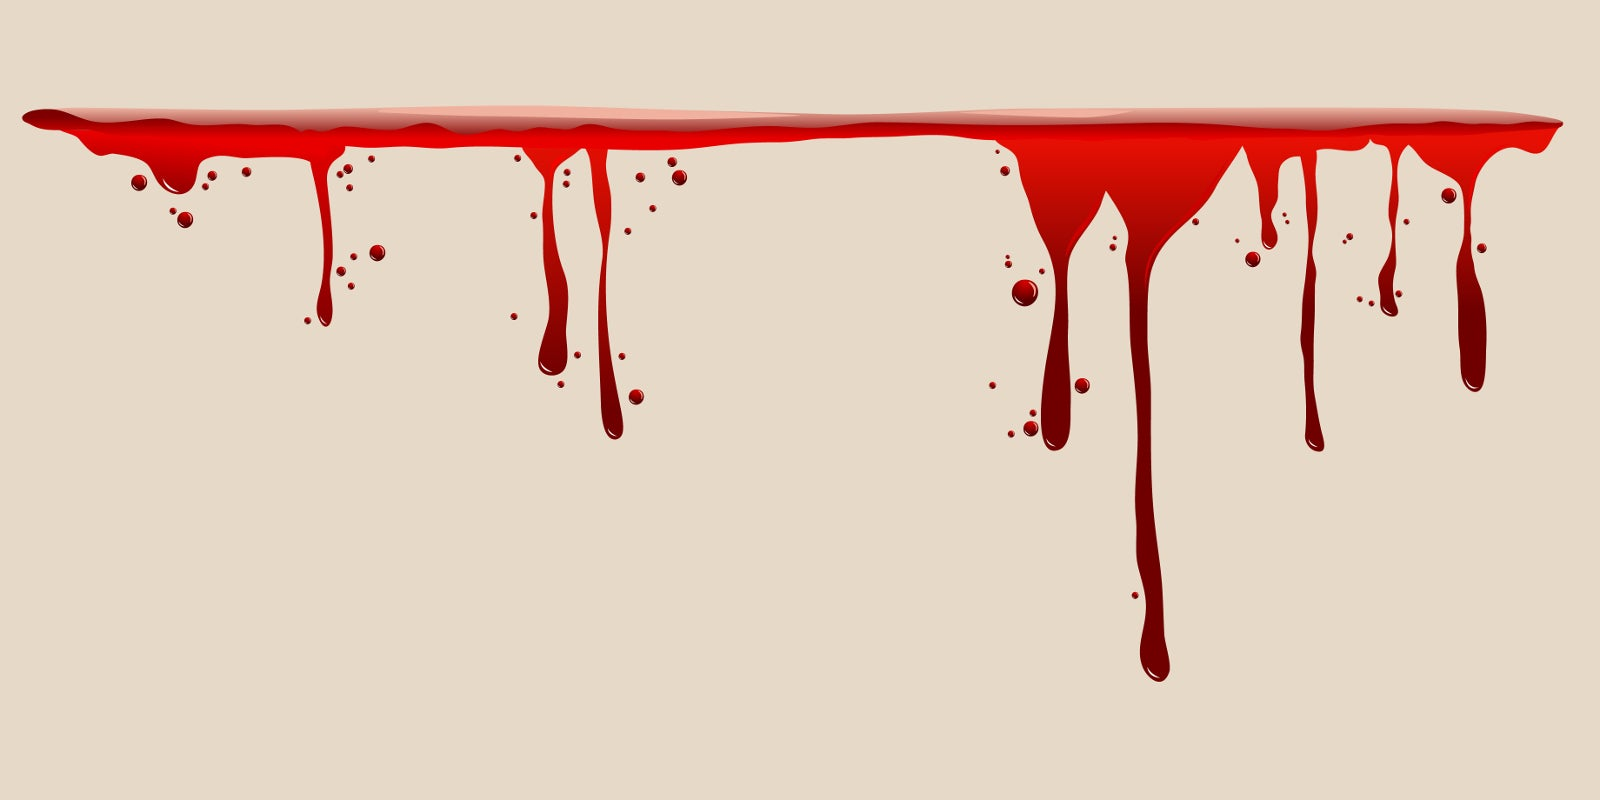 Fear Can Actually Kind Of Curdle Your Blood